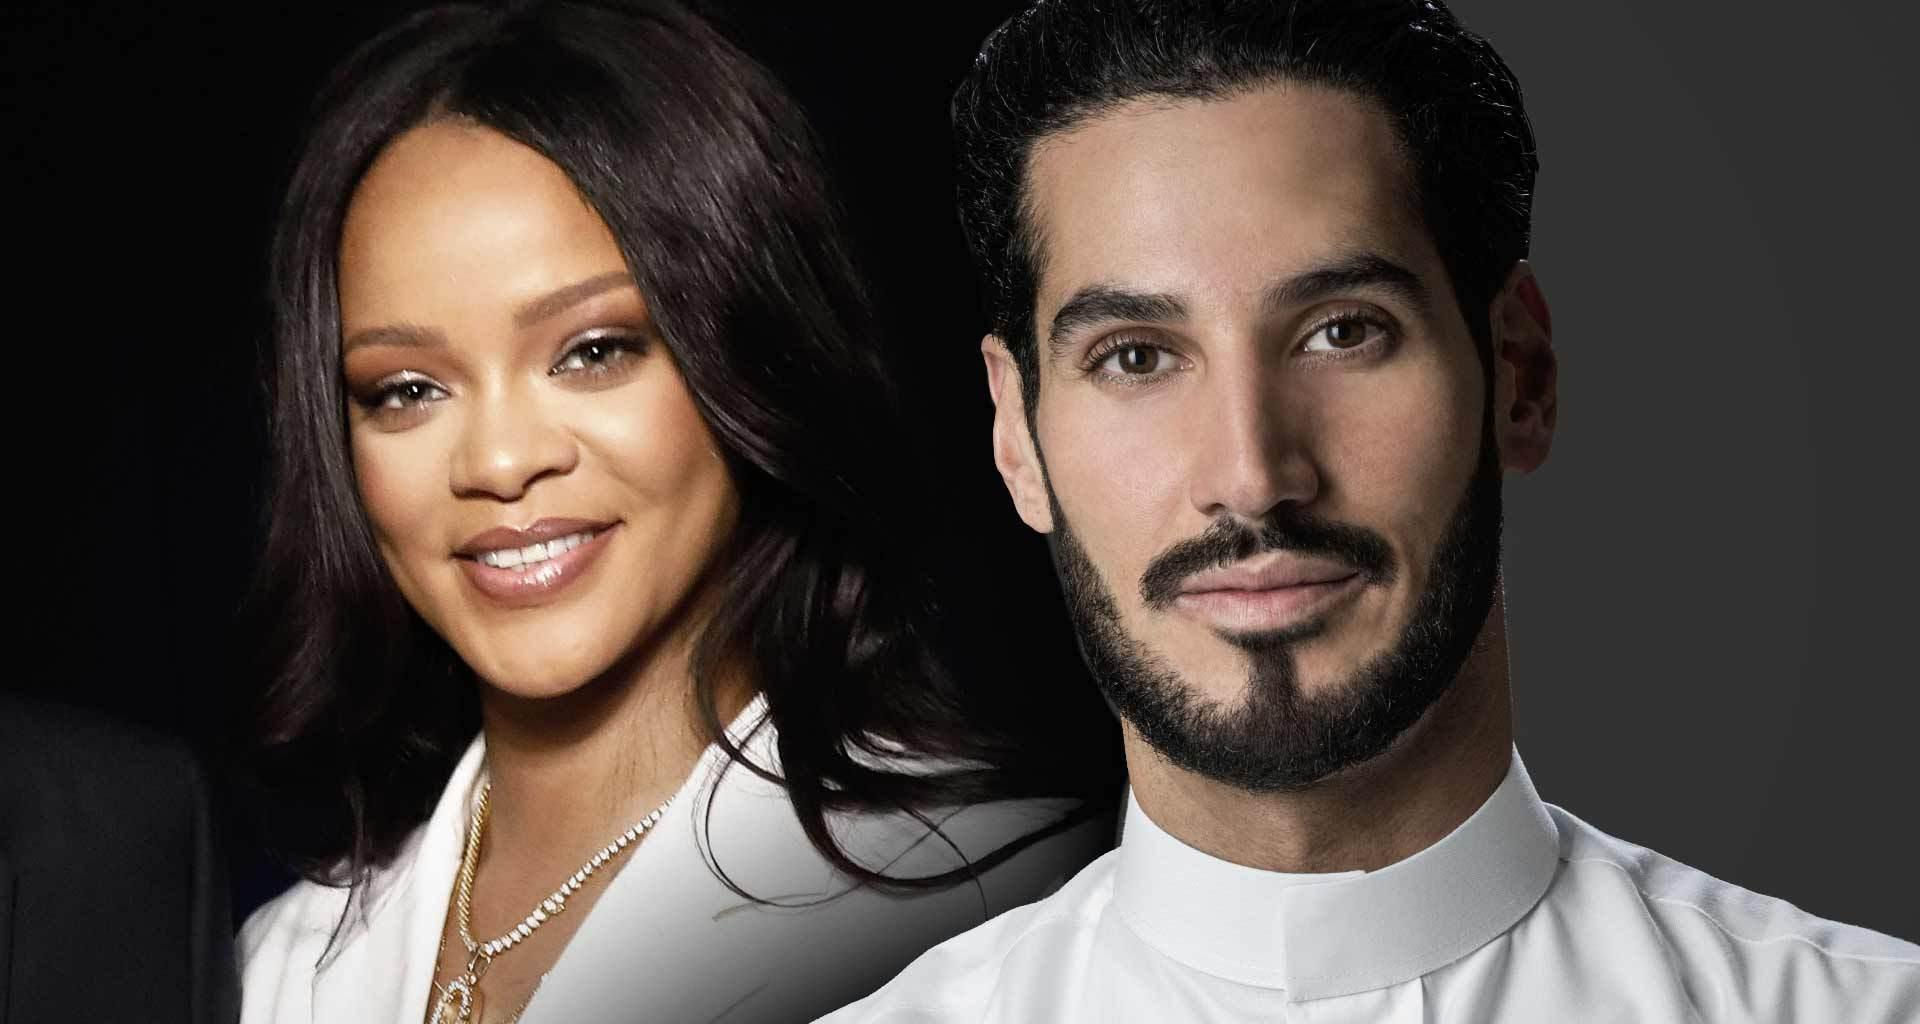 Rihanna Raves Over Being 'In Love' With Hassan Jameel And Discusses Marriage And Baby Plans During Rare Interview